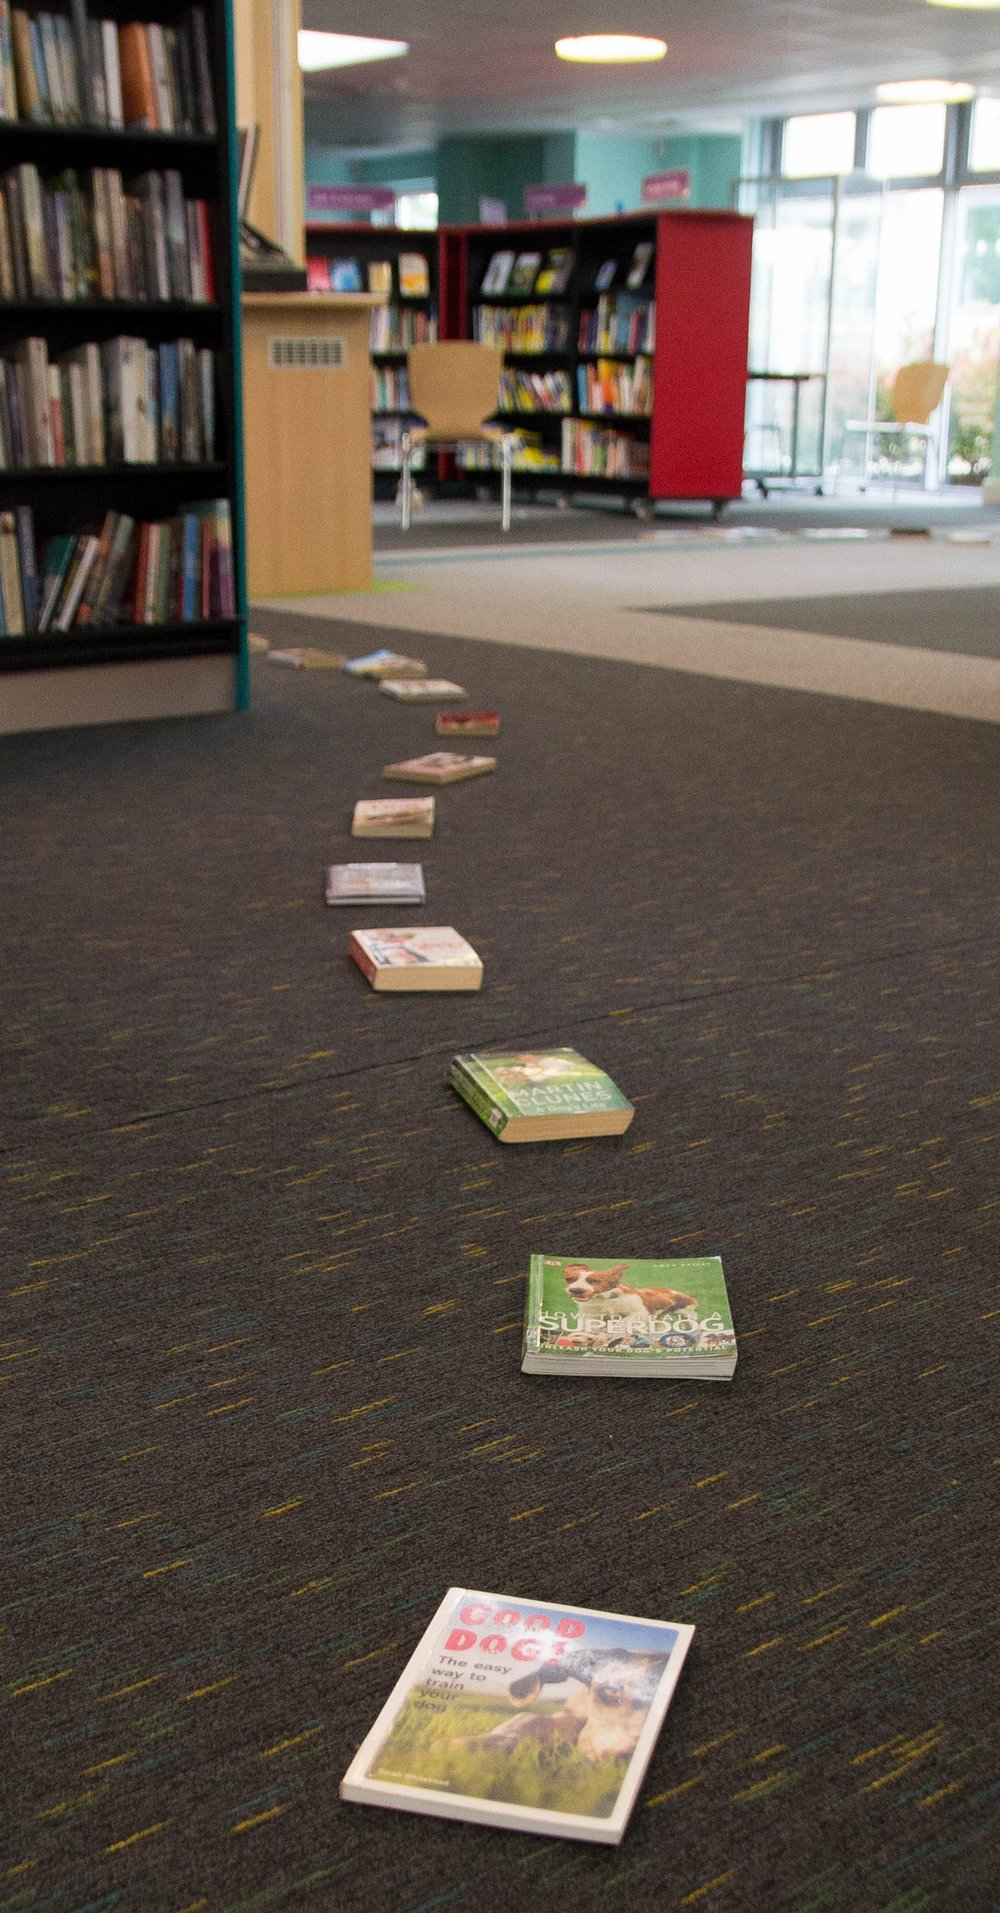 A trail of books leads the audience into the depths of the library